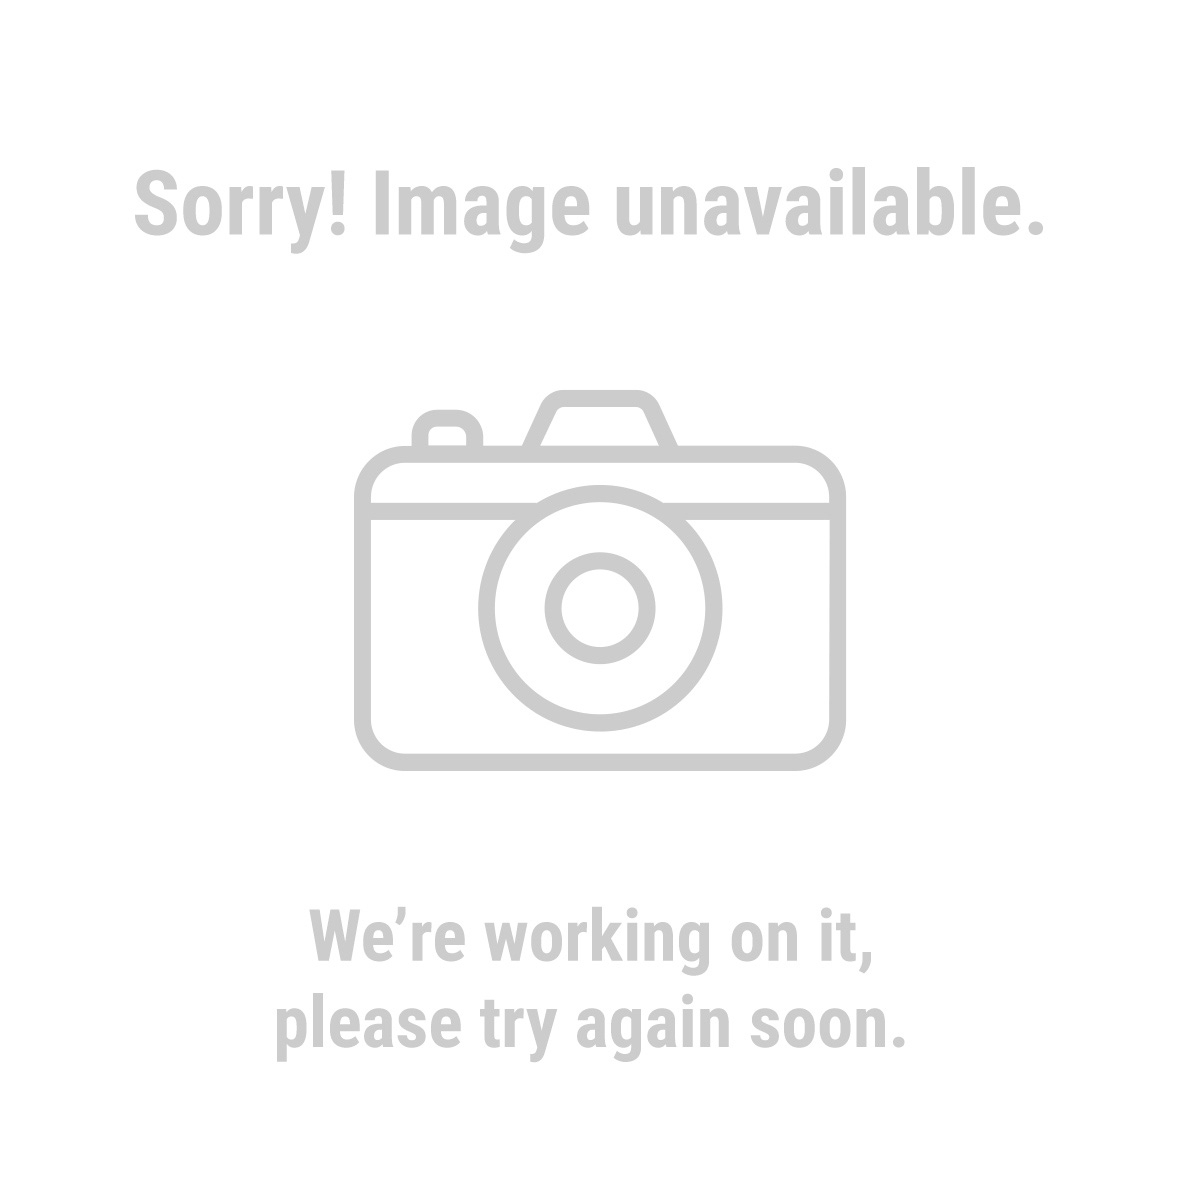 Haul-Master 61706 8 in. Solid Rubber Tire